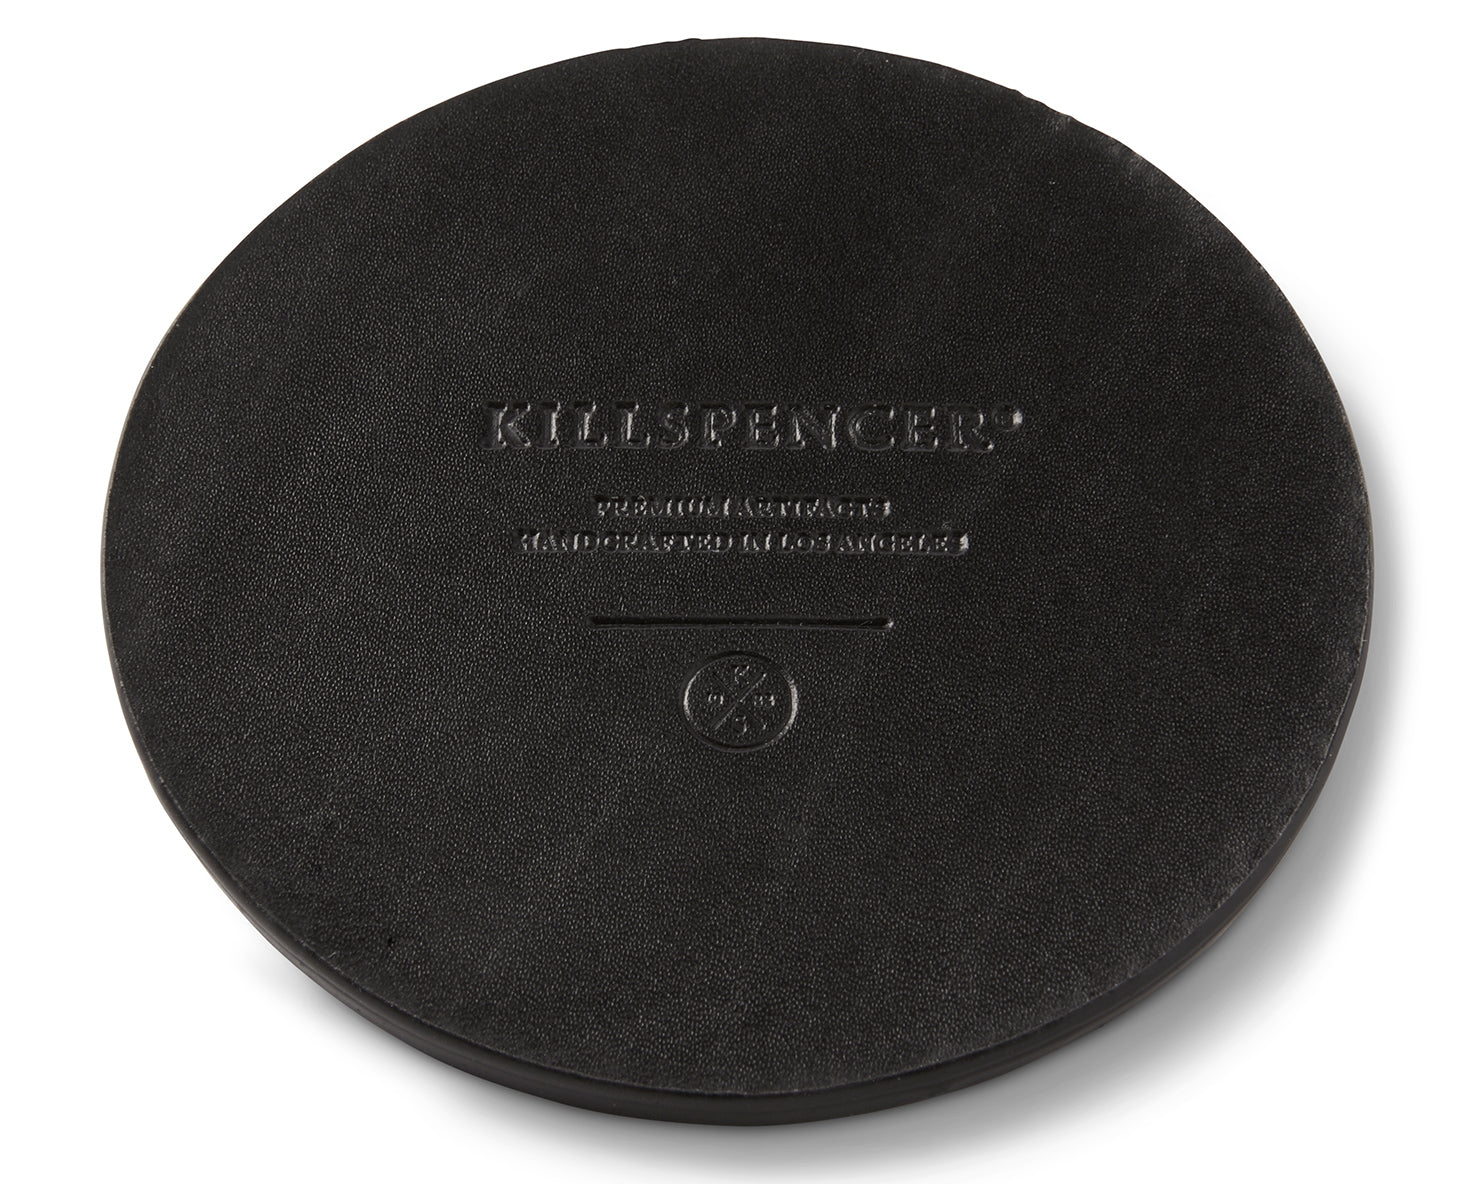 COASTER SET | KILLSPENCER® - Black Bullhide Leather